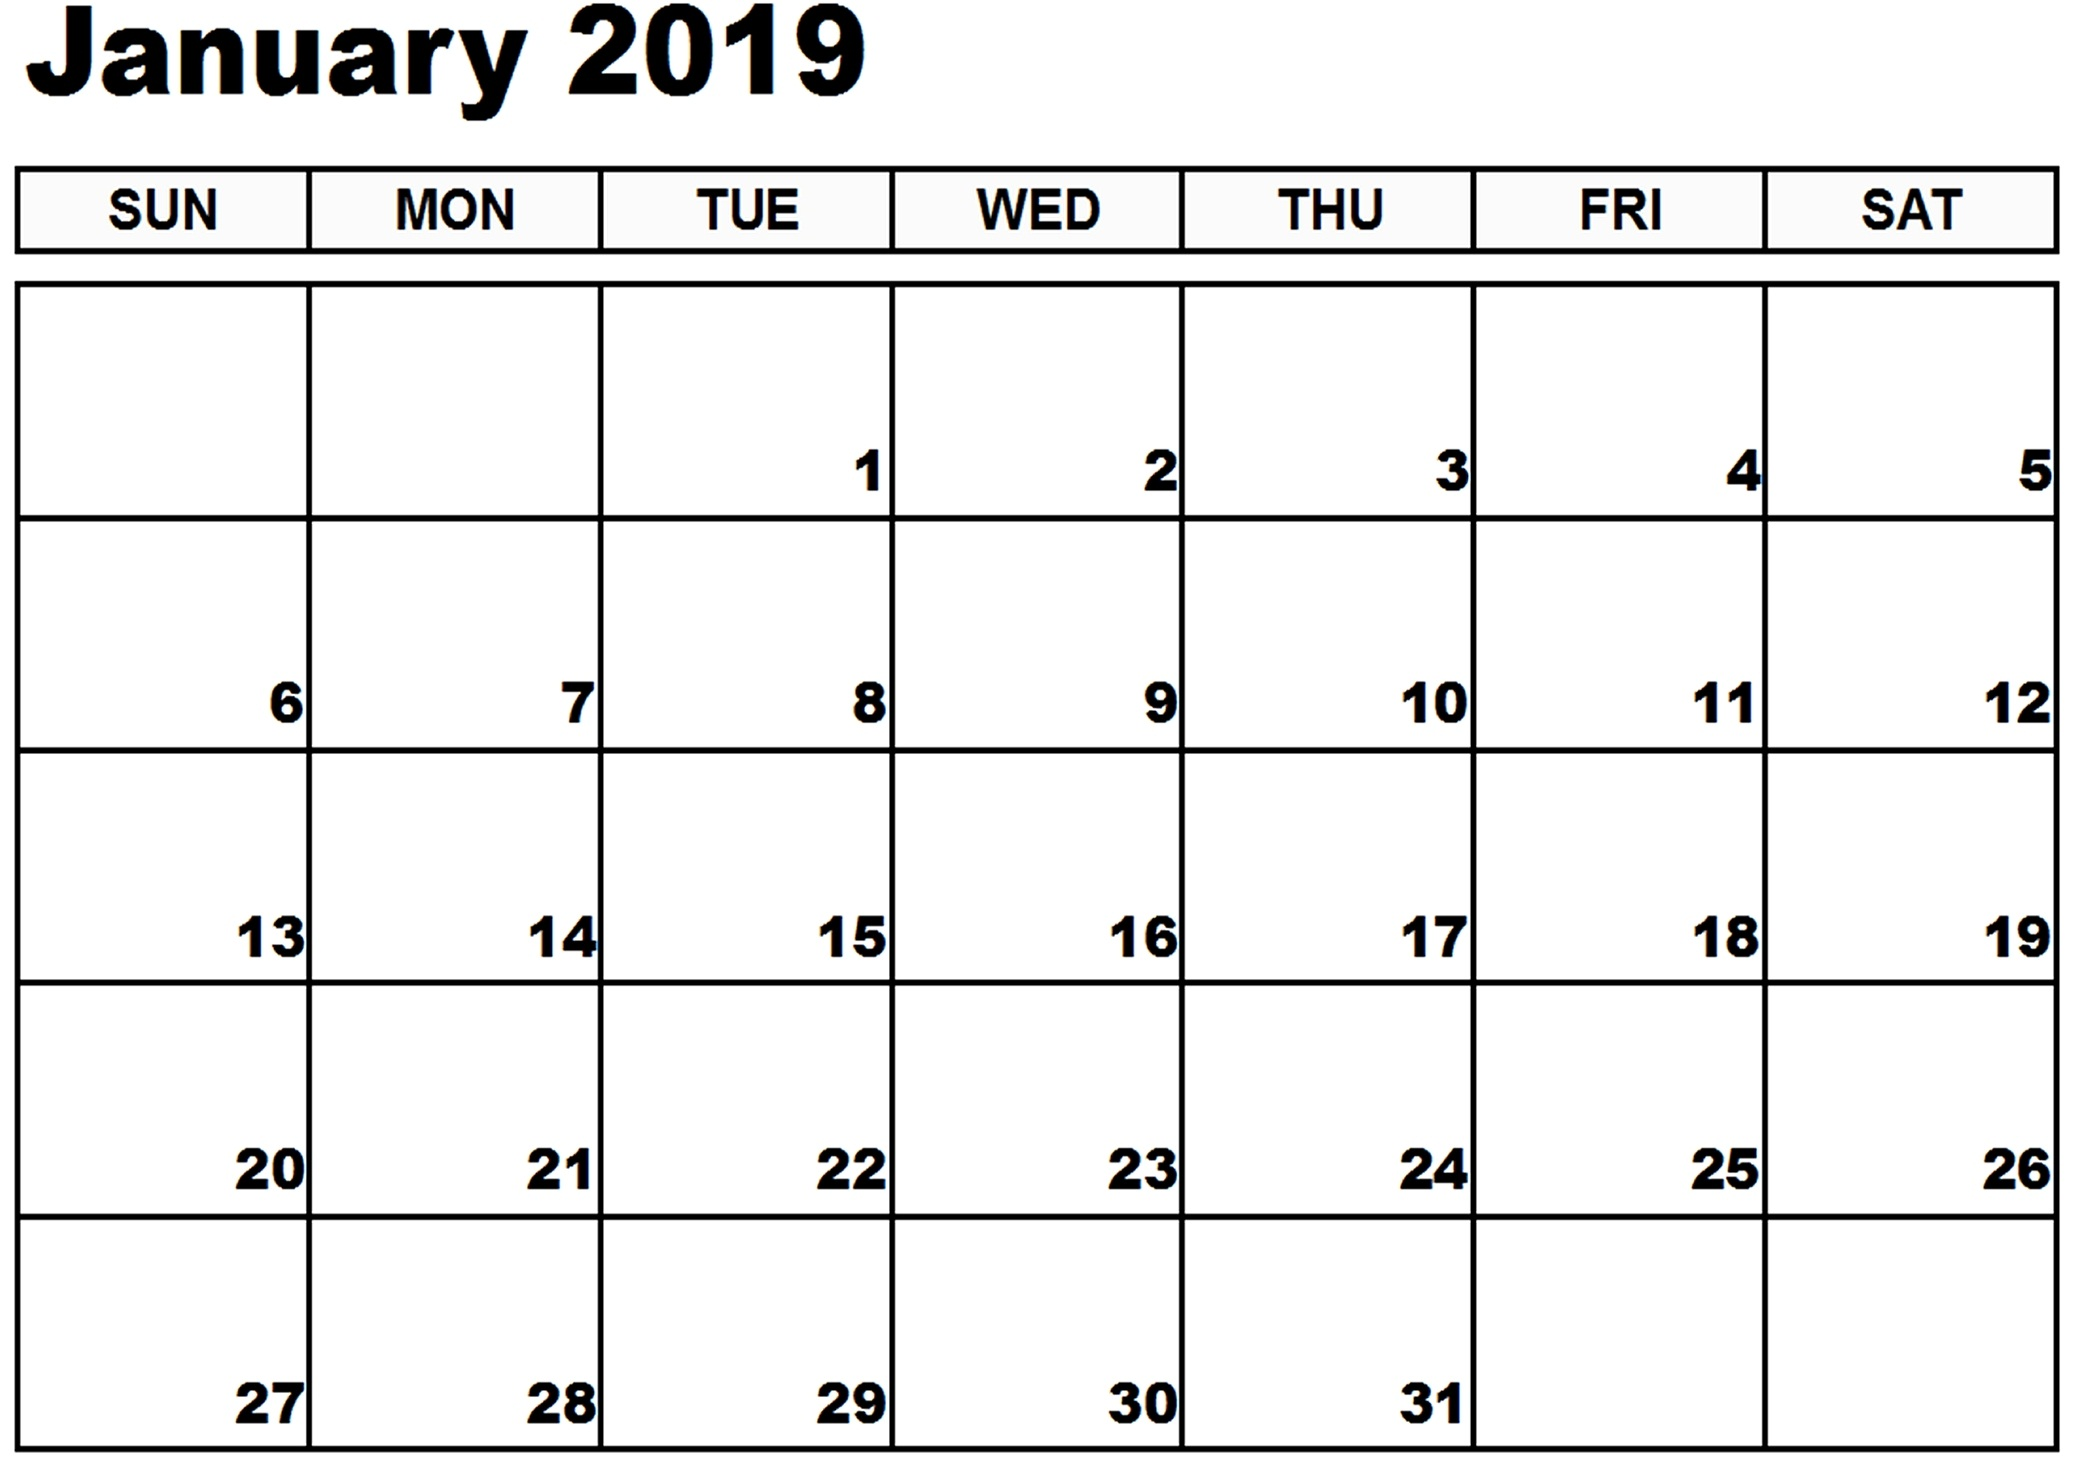 January 2019 Calendar Xls Free March 2019 Calendar Printable